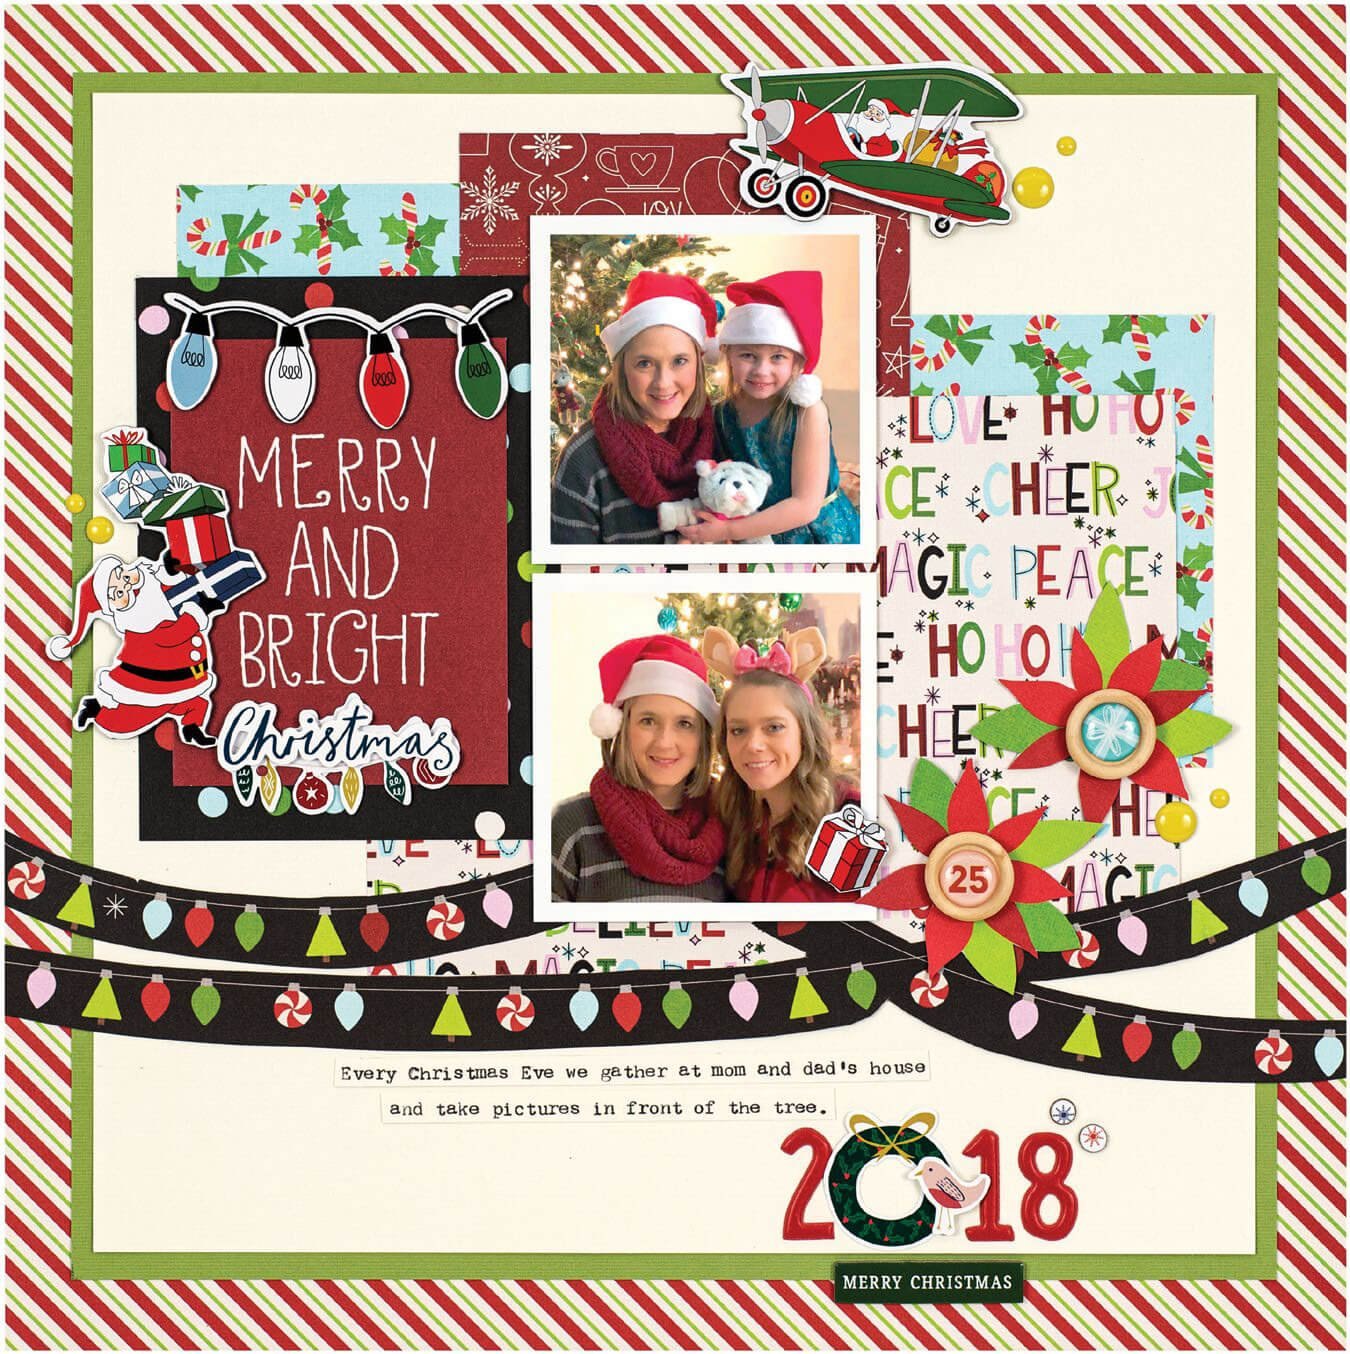 Scrapbook & Cards Today - Winter 2019 - Merry and Bright Christmas layout by Tegan Skwiat